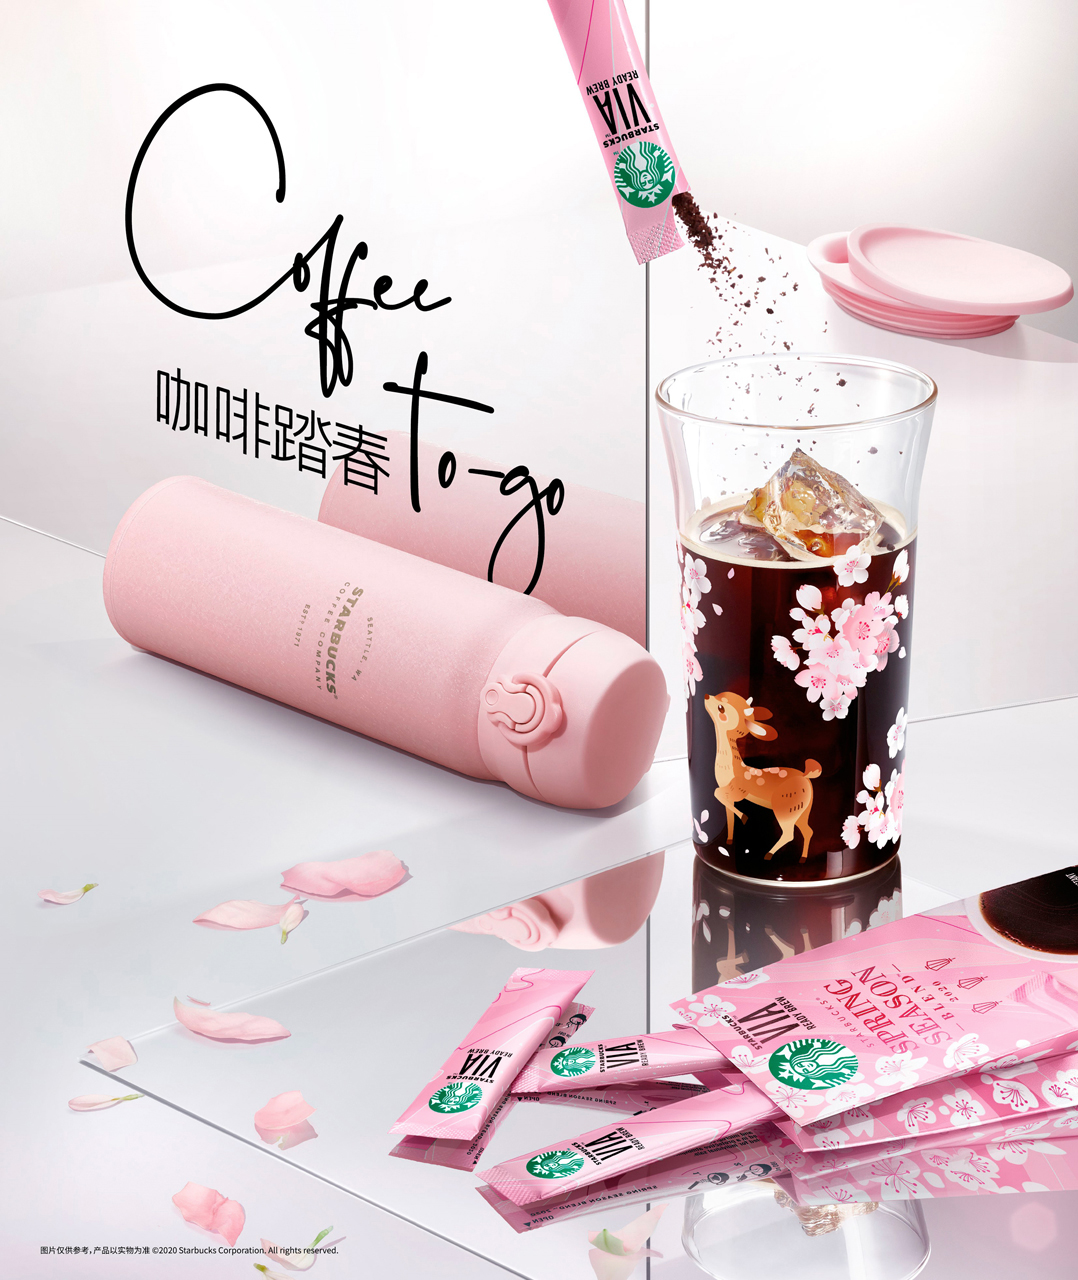 Sabine-Scheer-starbucks-china-cherryblossoms-foodphotography